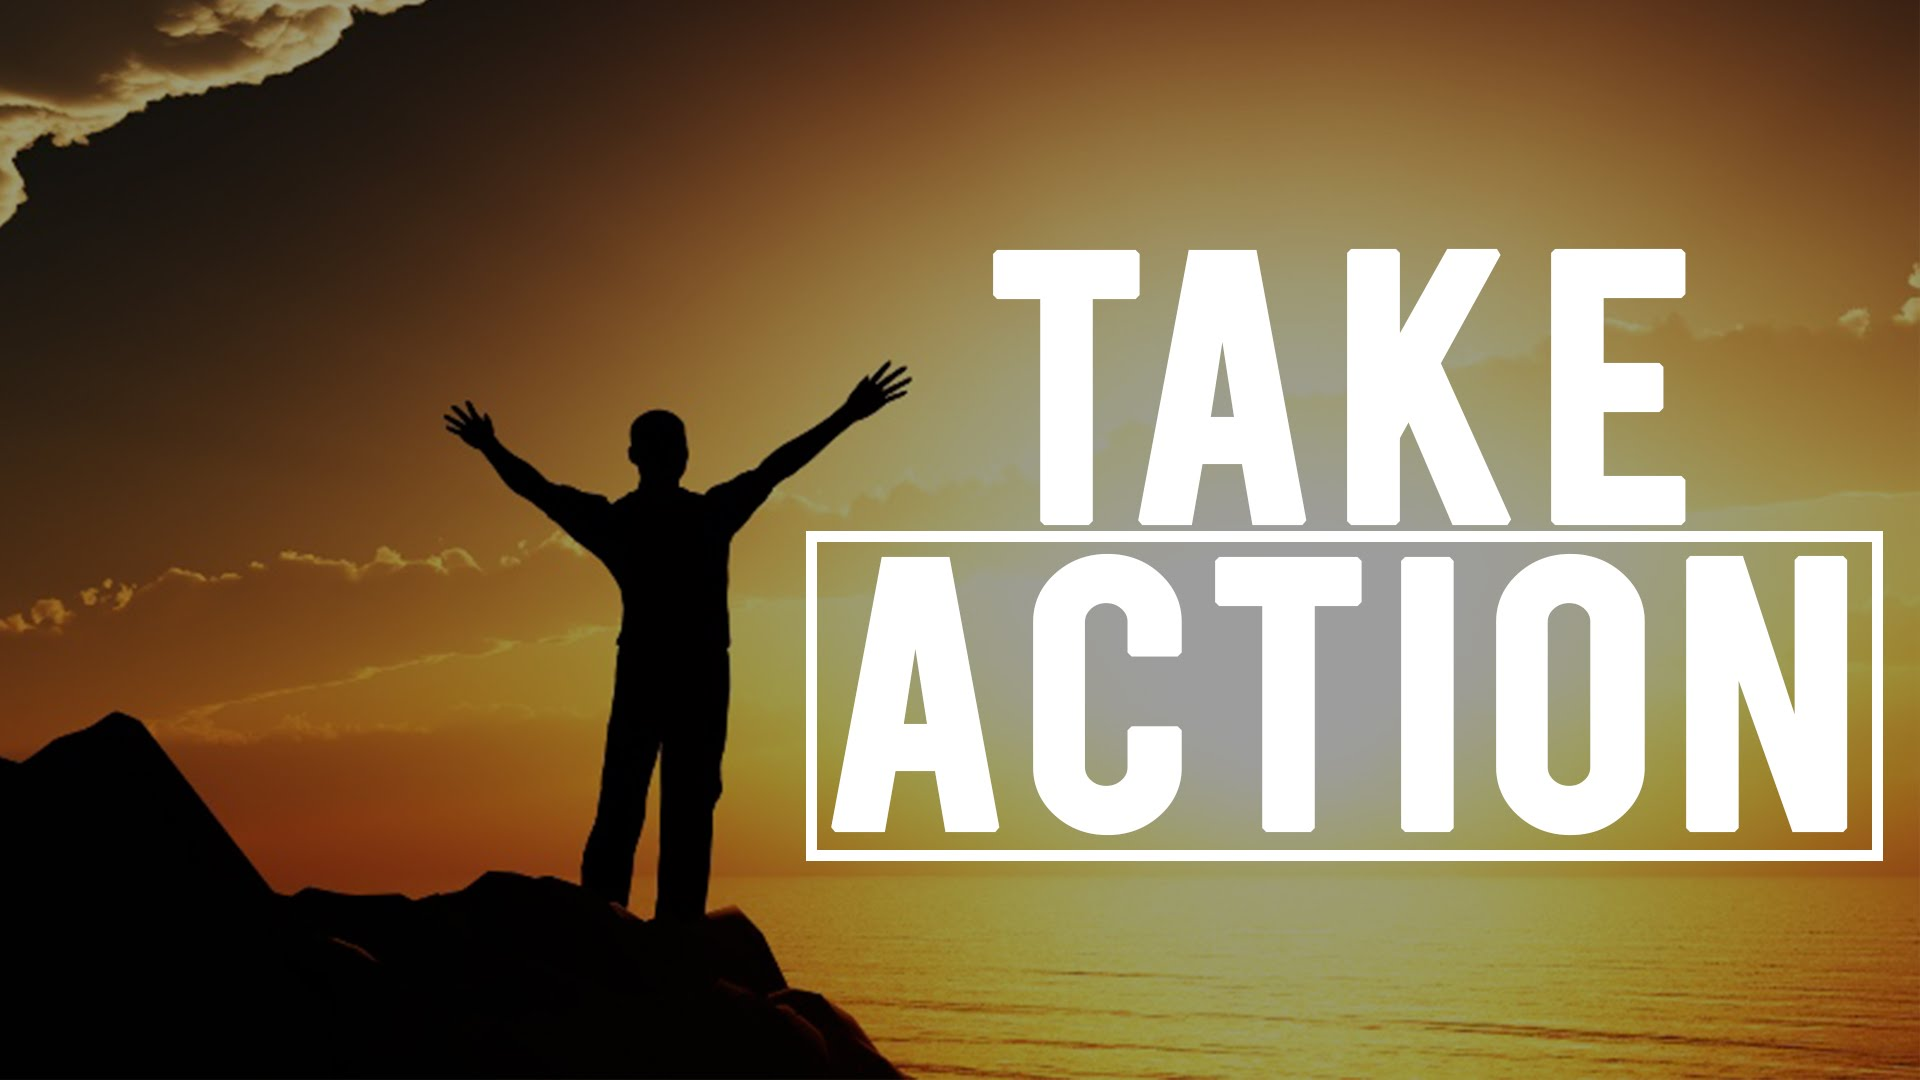 Time To Take Action